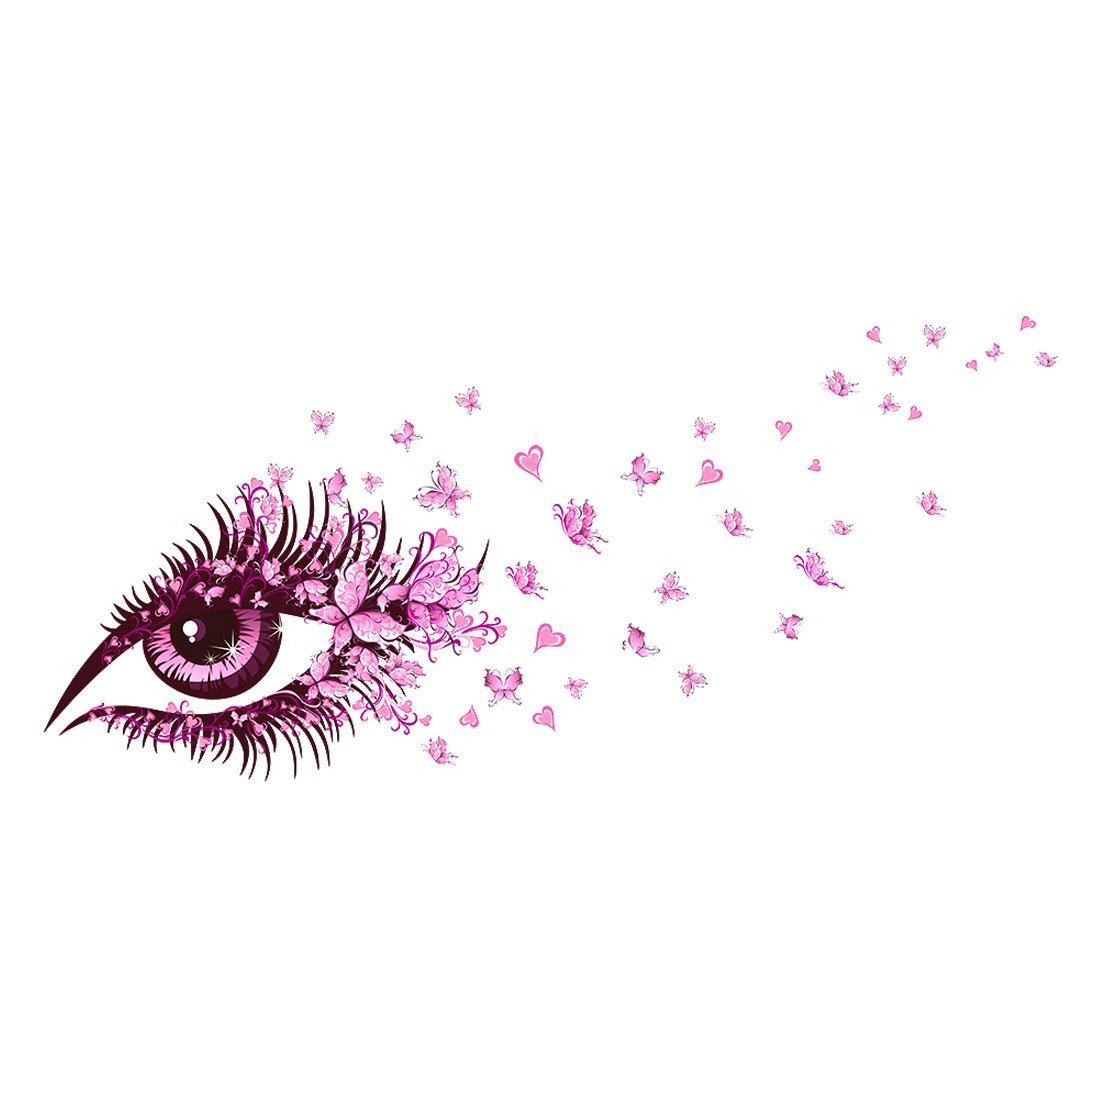 uxcell Butterfly Girl Eye DIY Wall Sticker Home Decoration Living Room Bedroom Decor Nursery Room Decorative Mural Creative Wall Decals Removable Pink